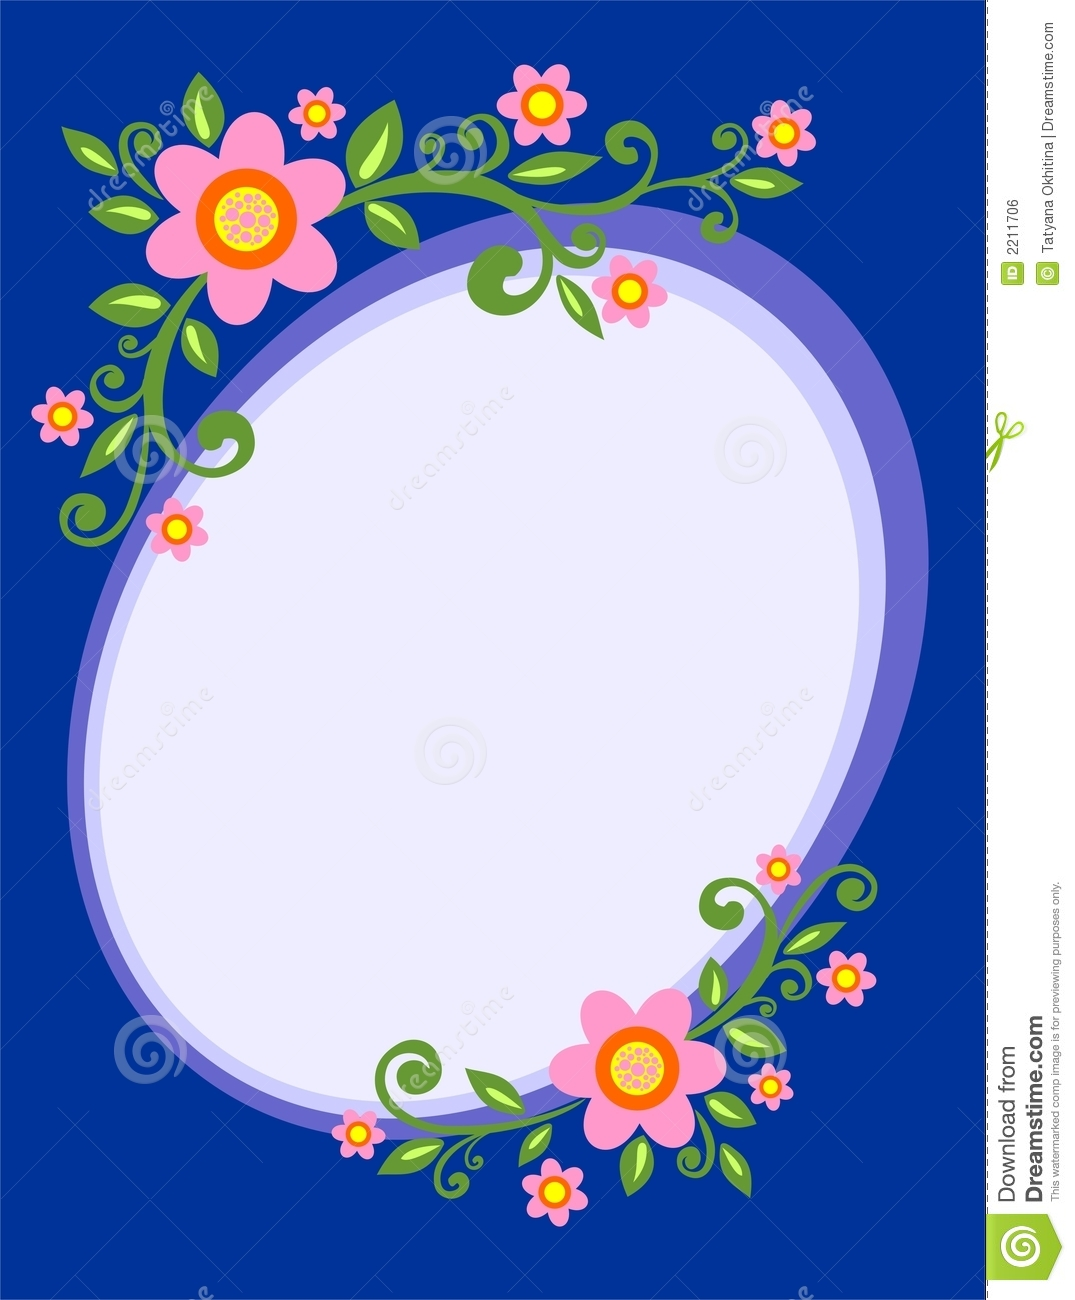 Flower decorative frame stock vector. Illustration of silhouette ...